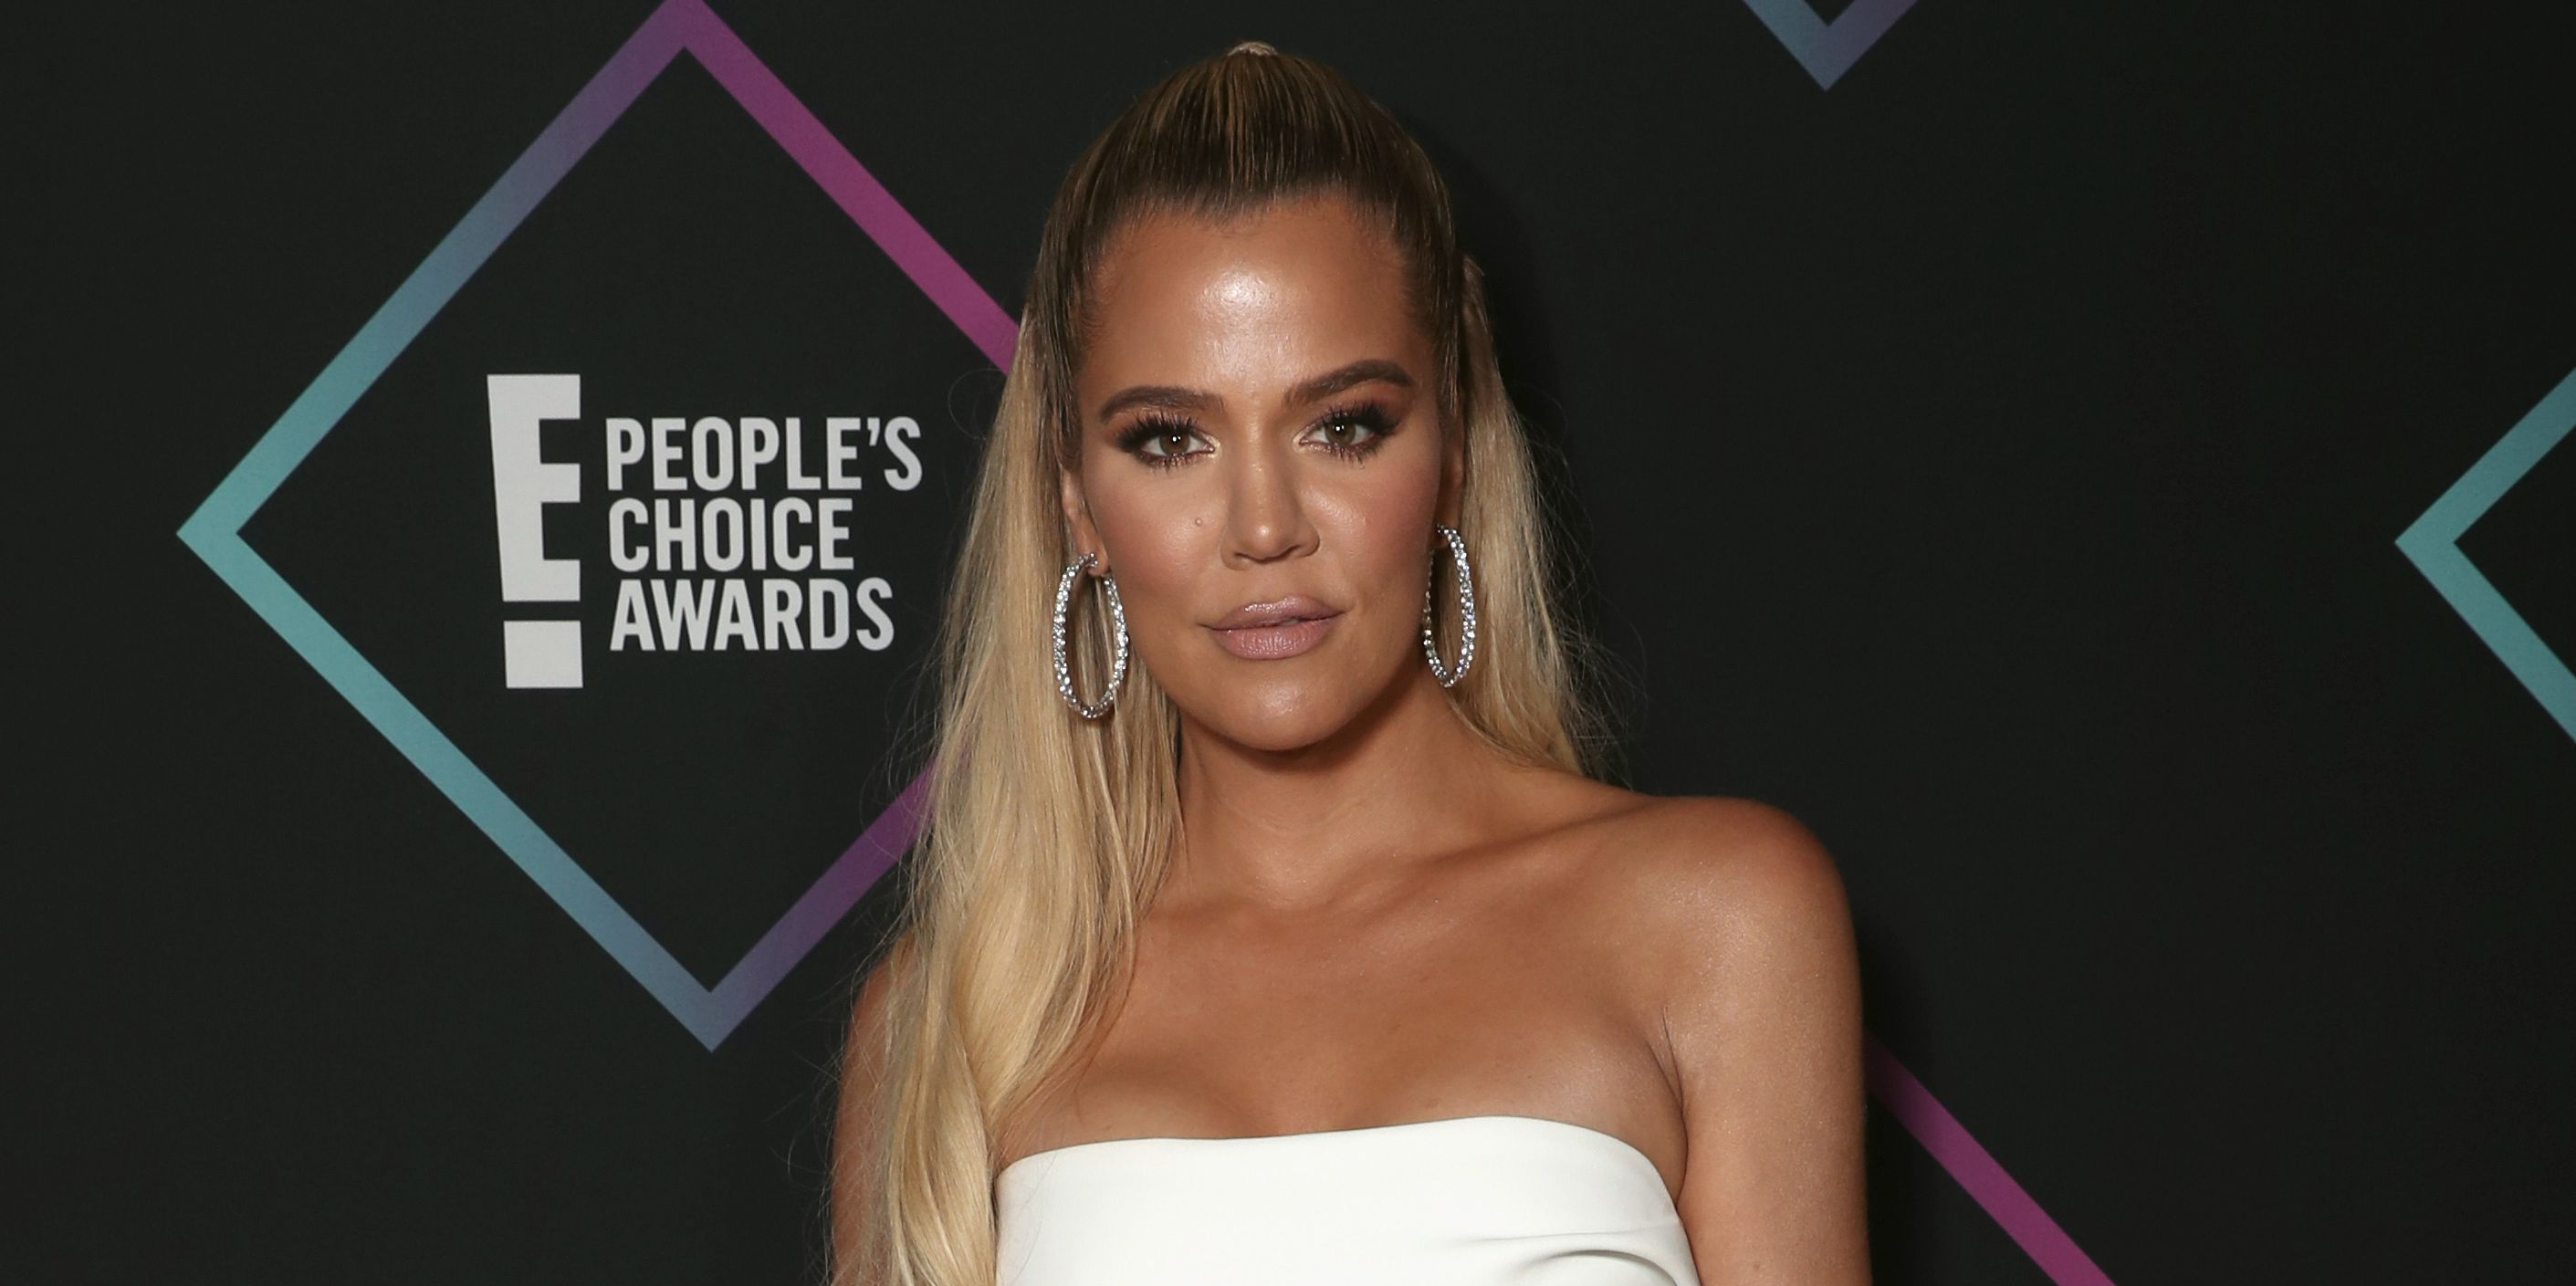 So, Khloé Kardashian Got Her Knee Sucked With a Straw During a Healing Ceremony in Bali